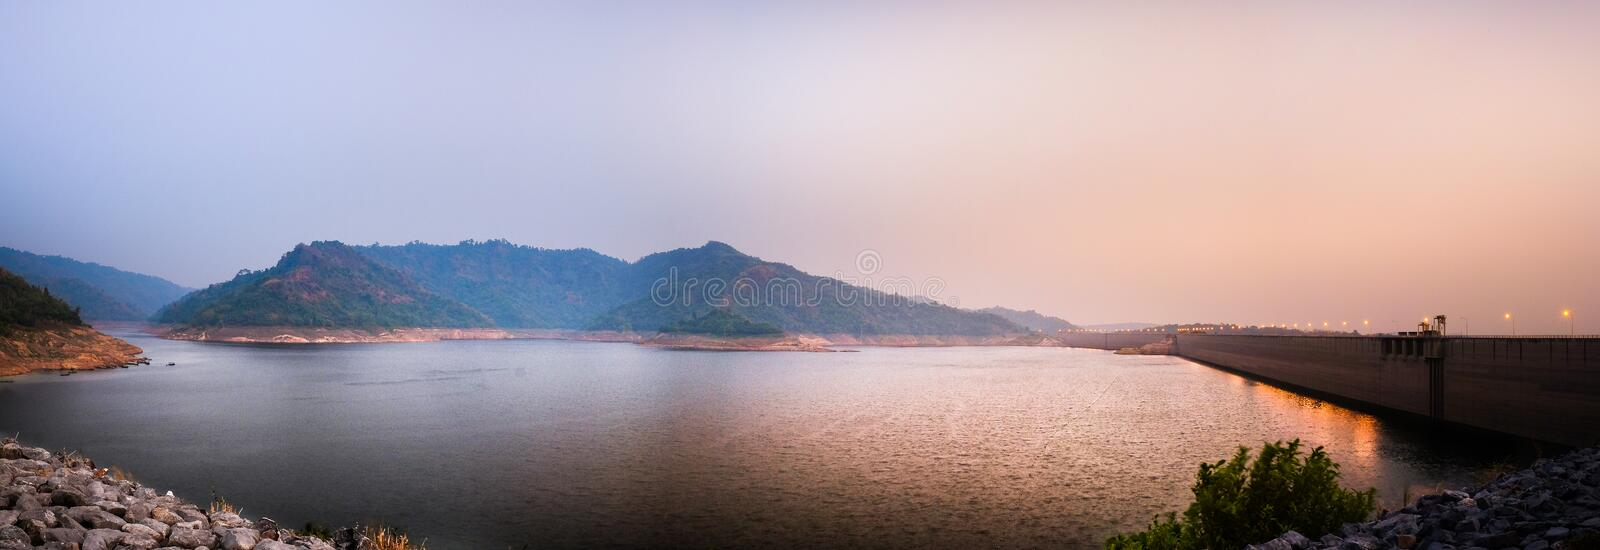 Dam on a river in the mountains. Nakhon Nayok royalty free stock photography